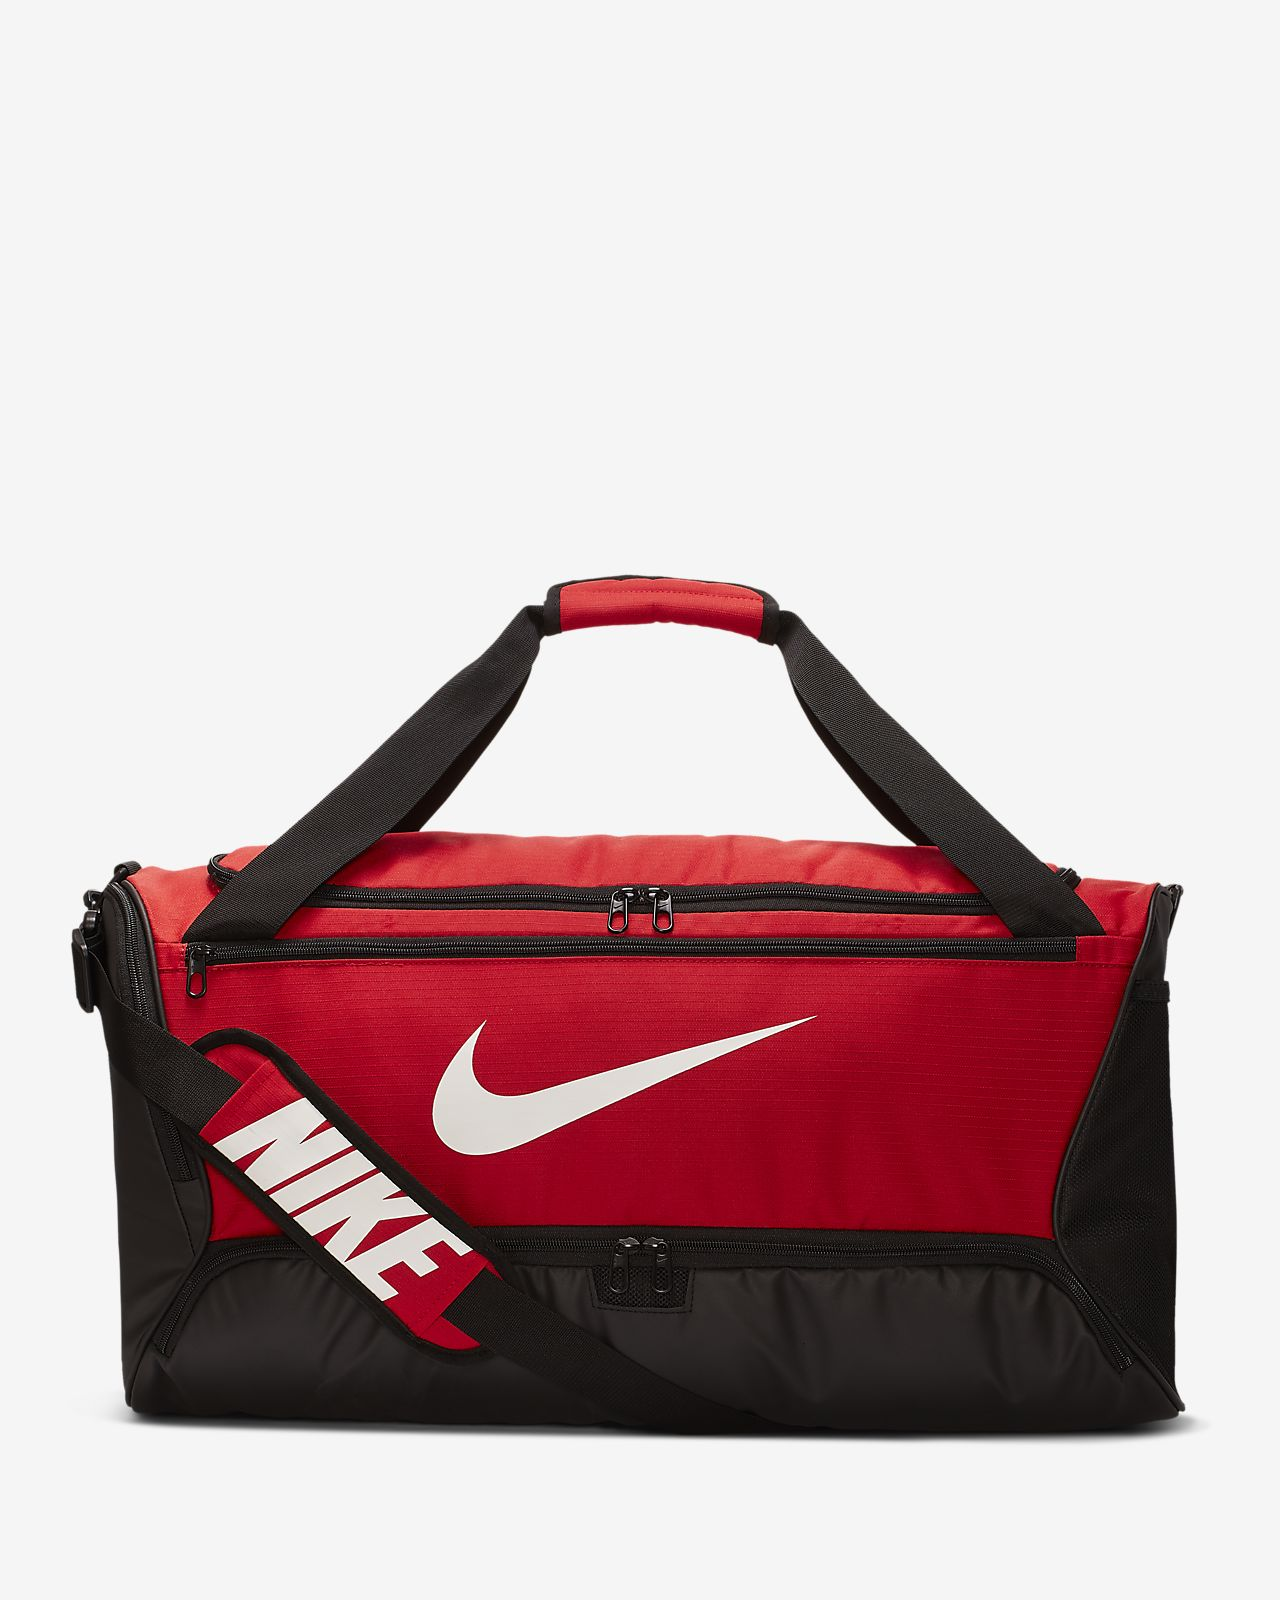 Nike Brasilia Training Duffle Bag (Medium)